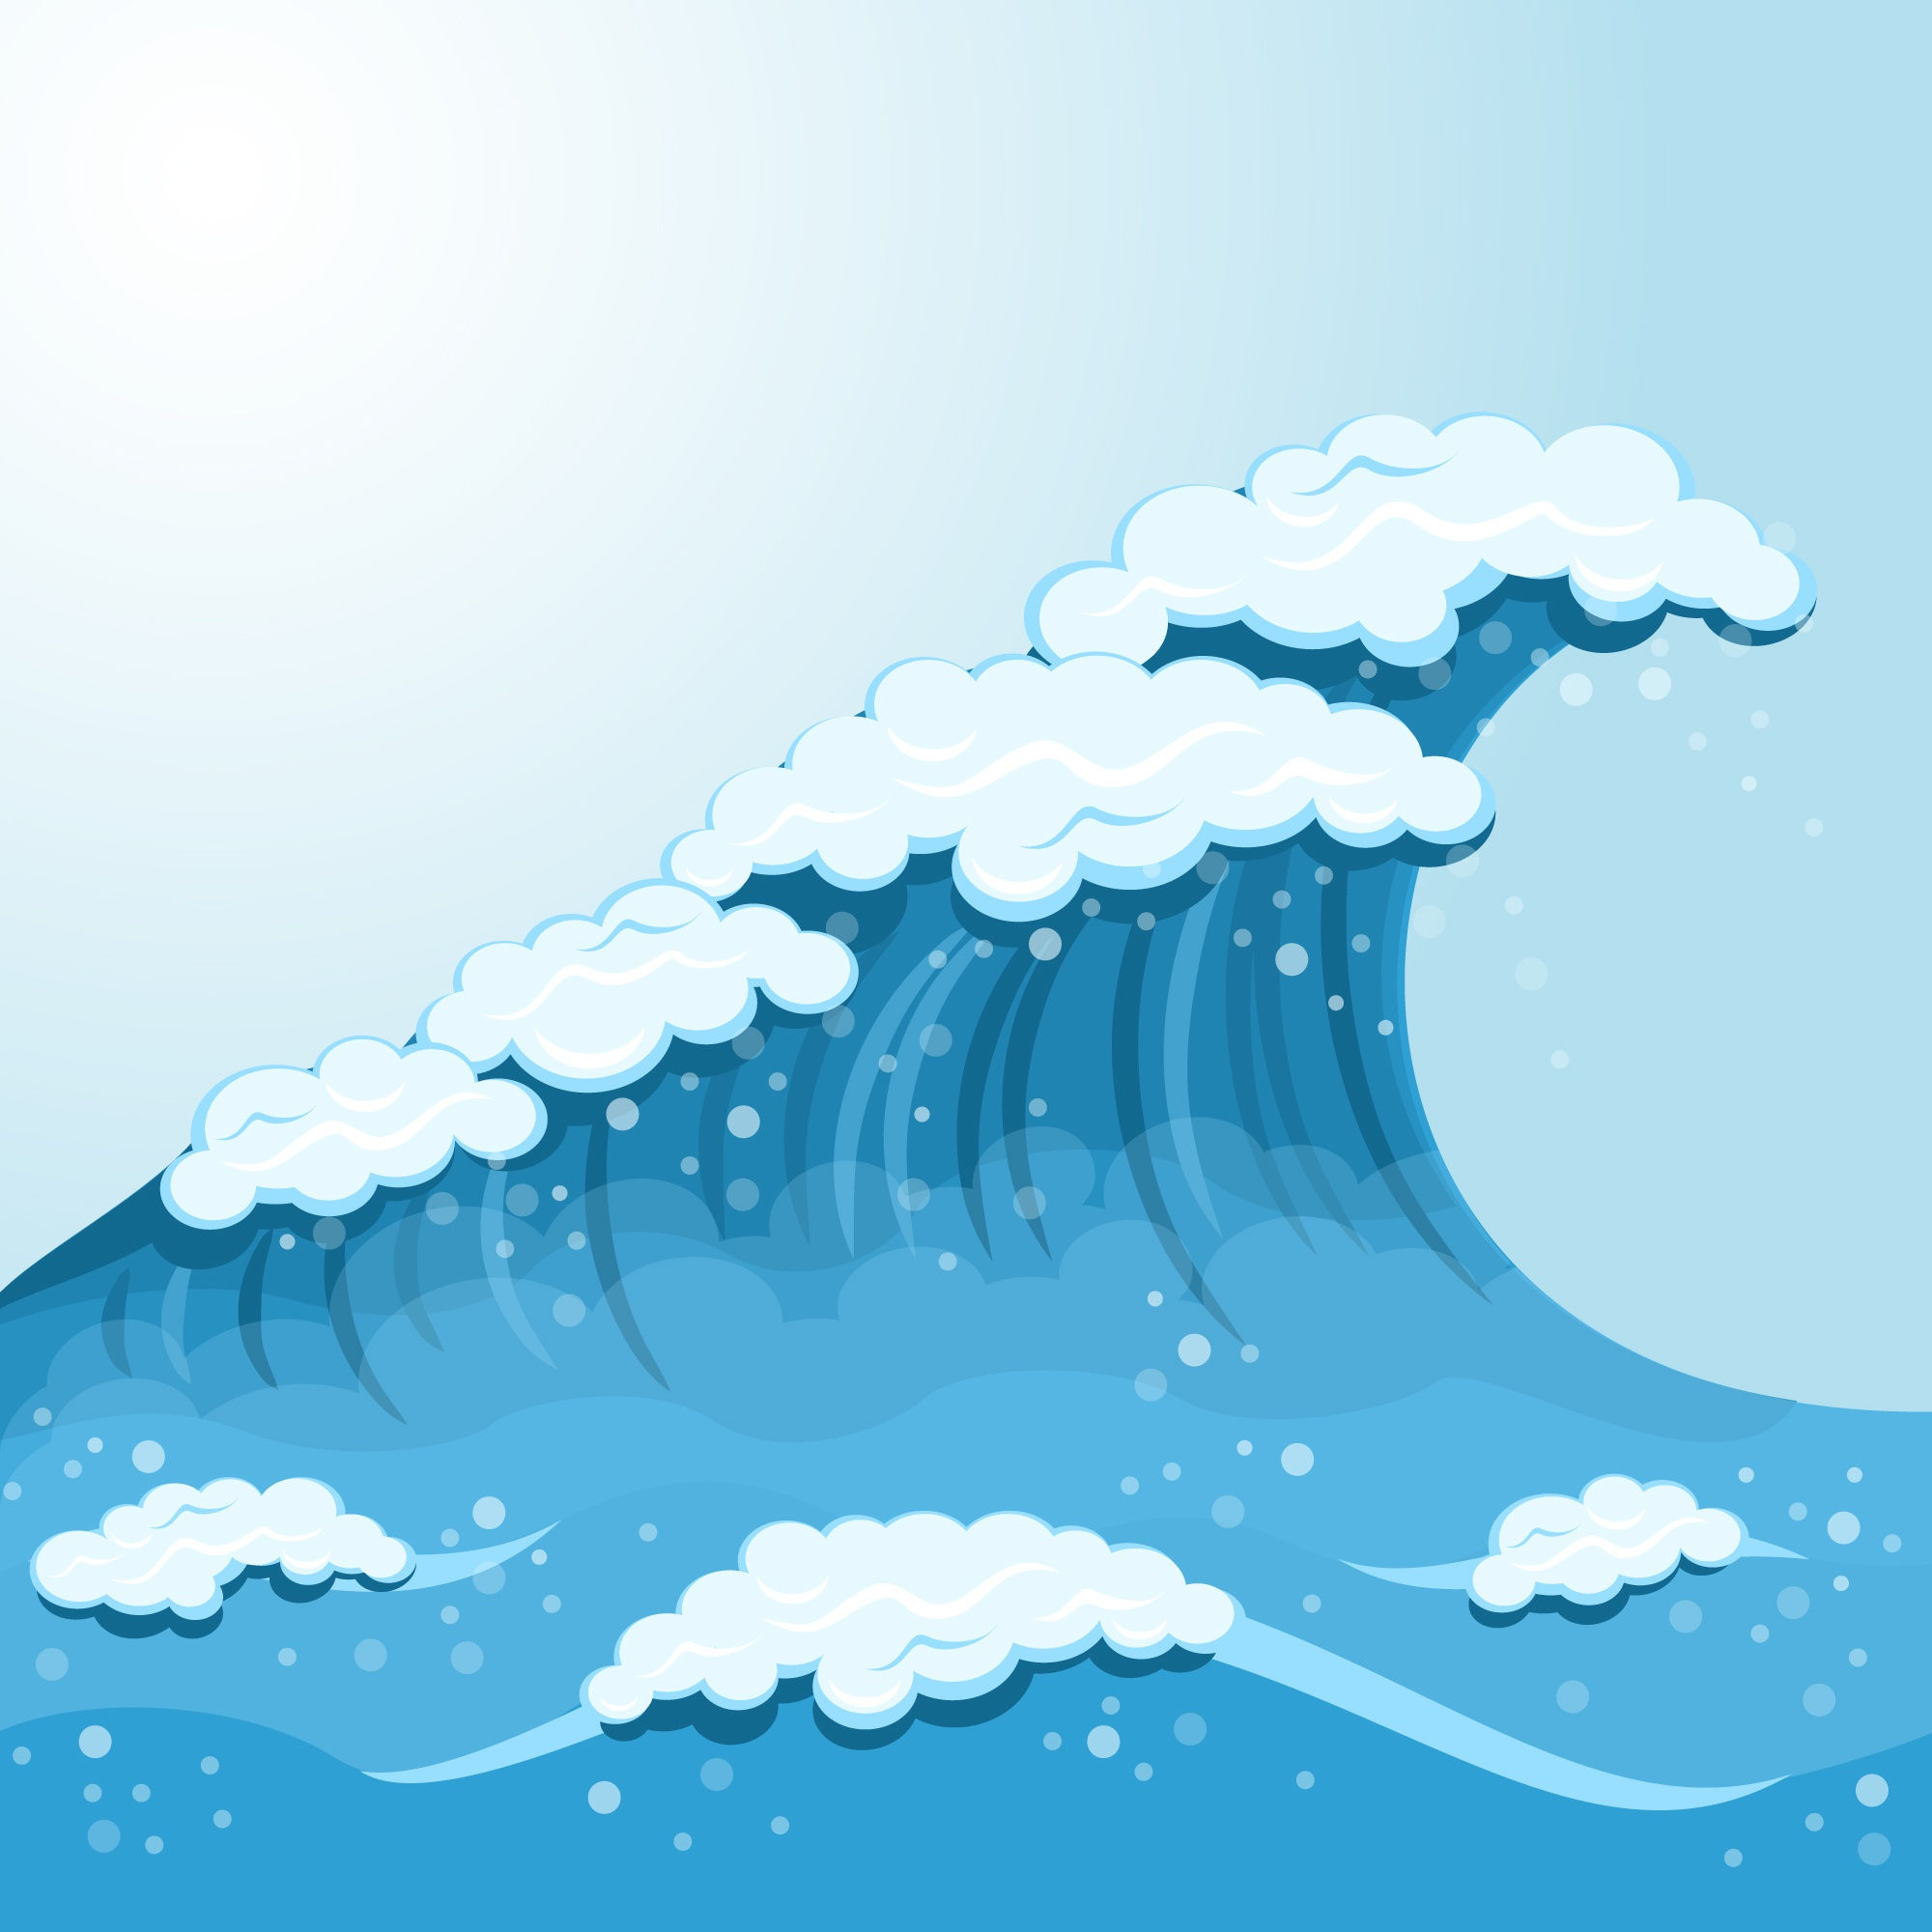 Wave cartoon background